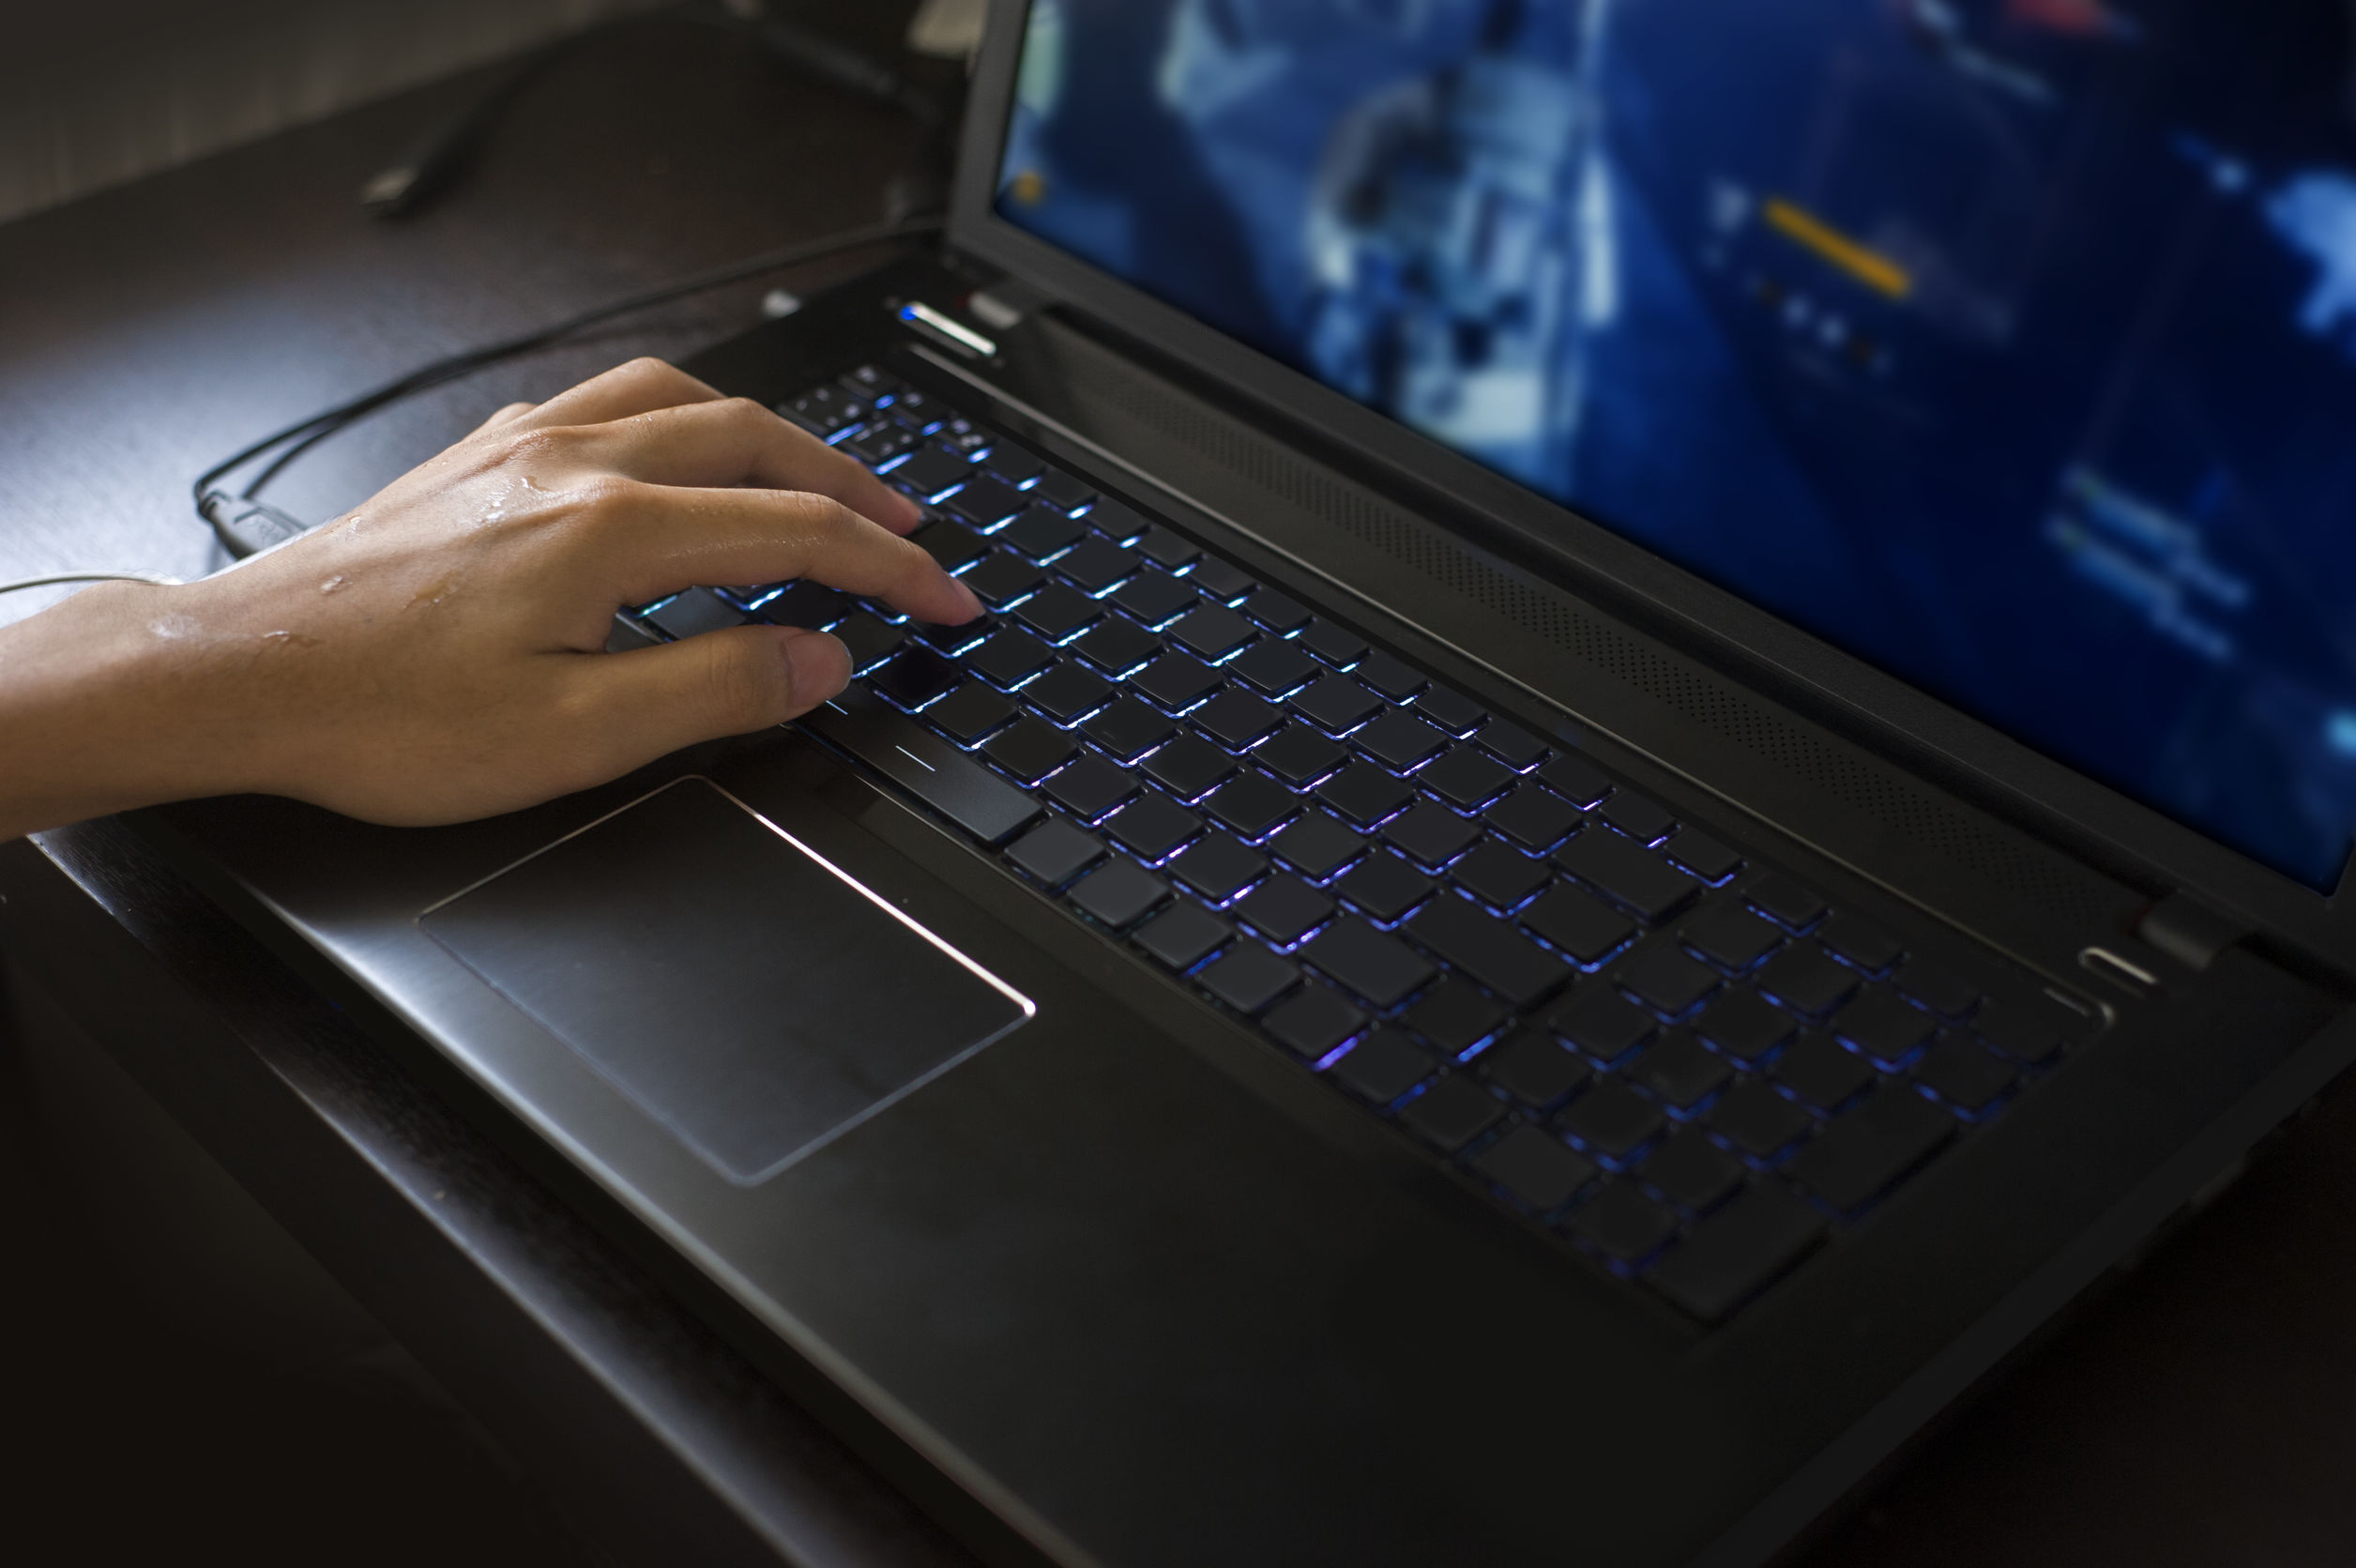 Best Gaming Laptop 2021: Shopping Guide & Review